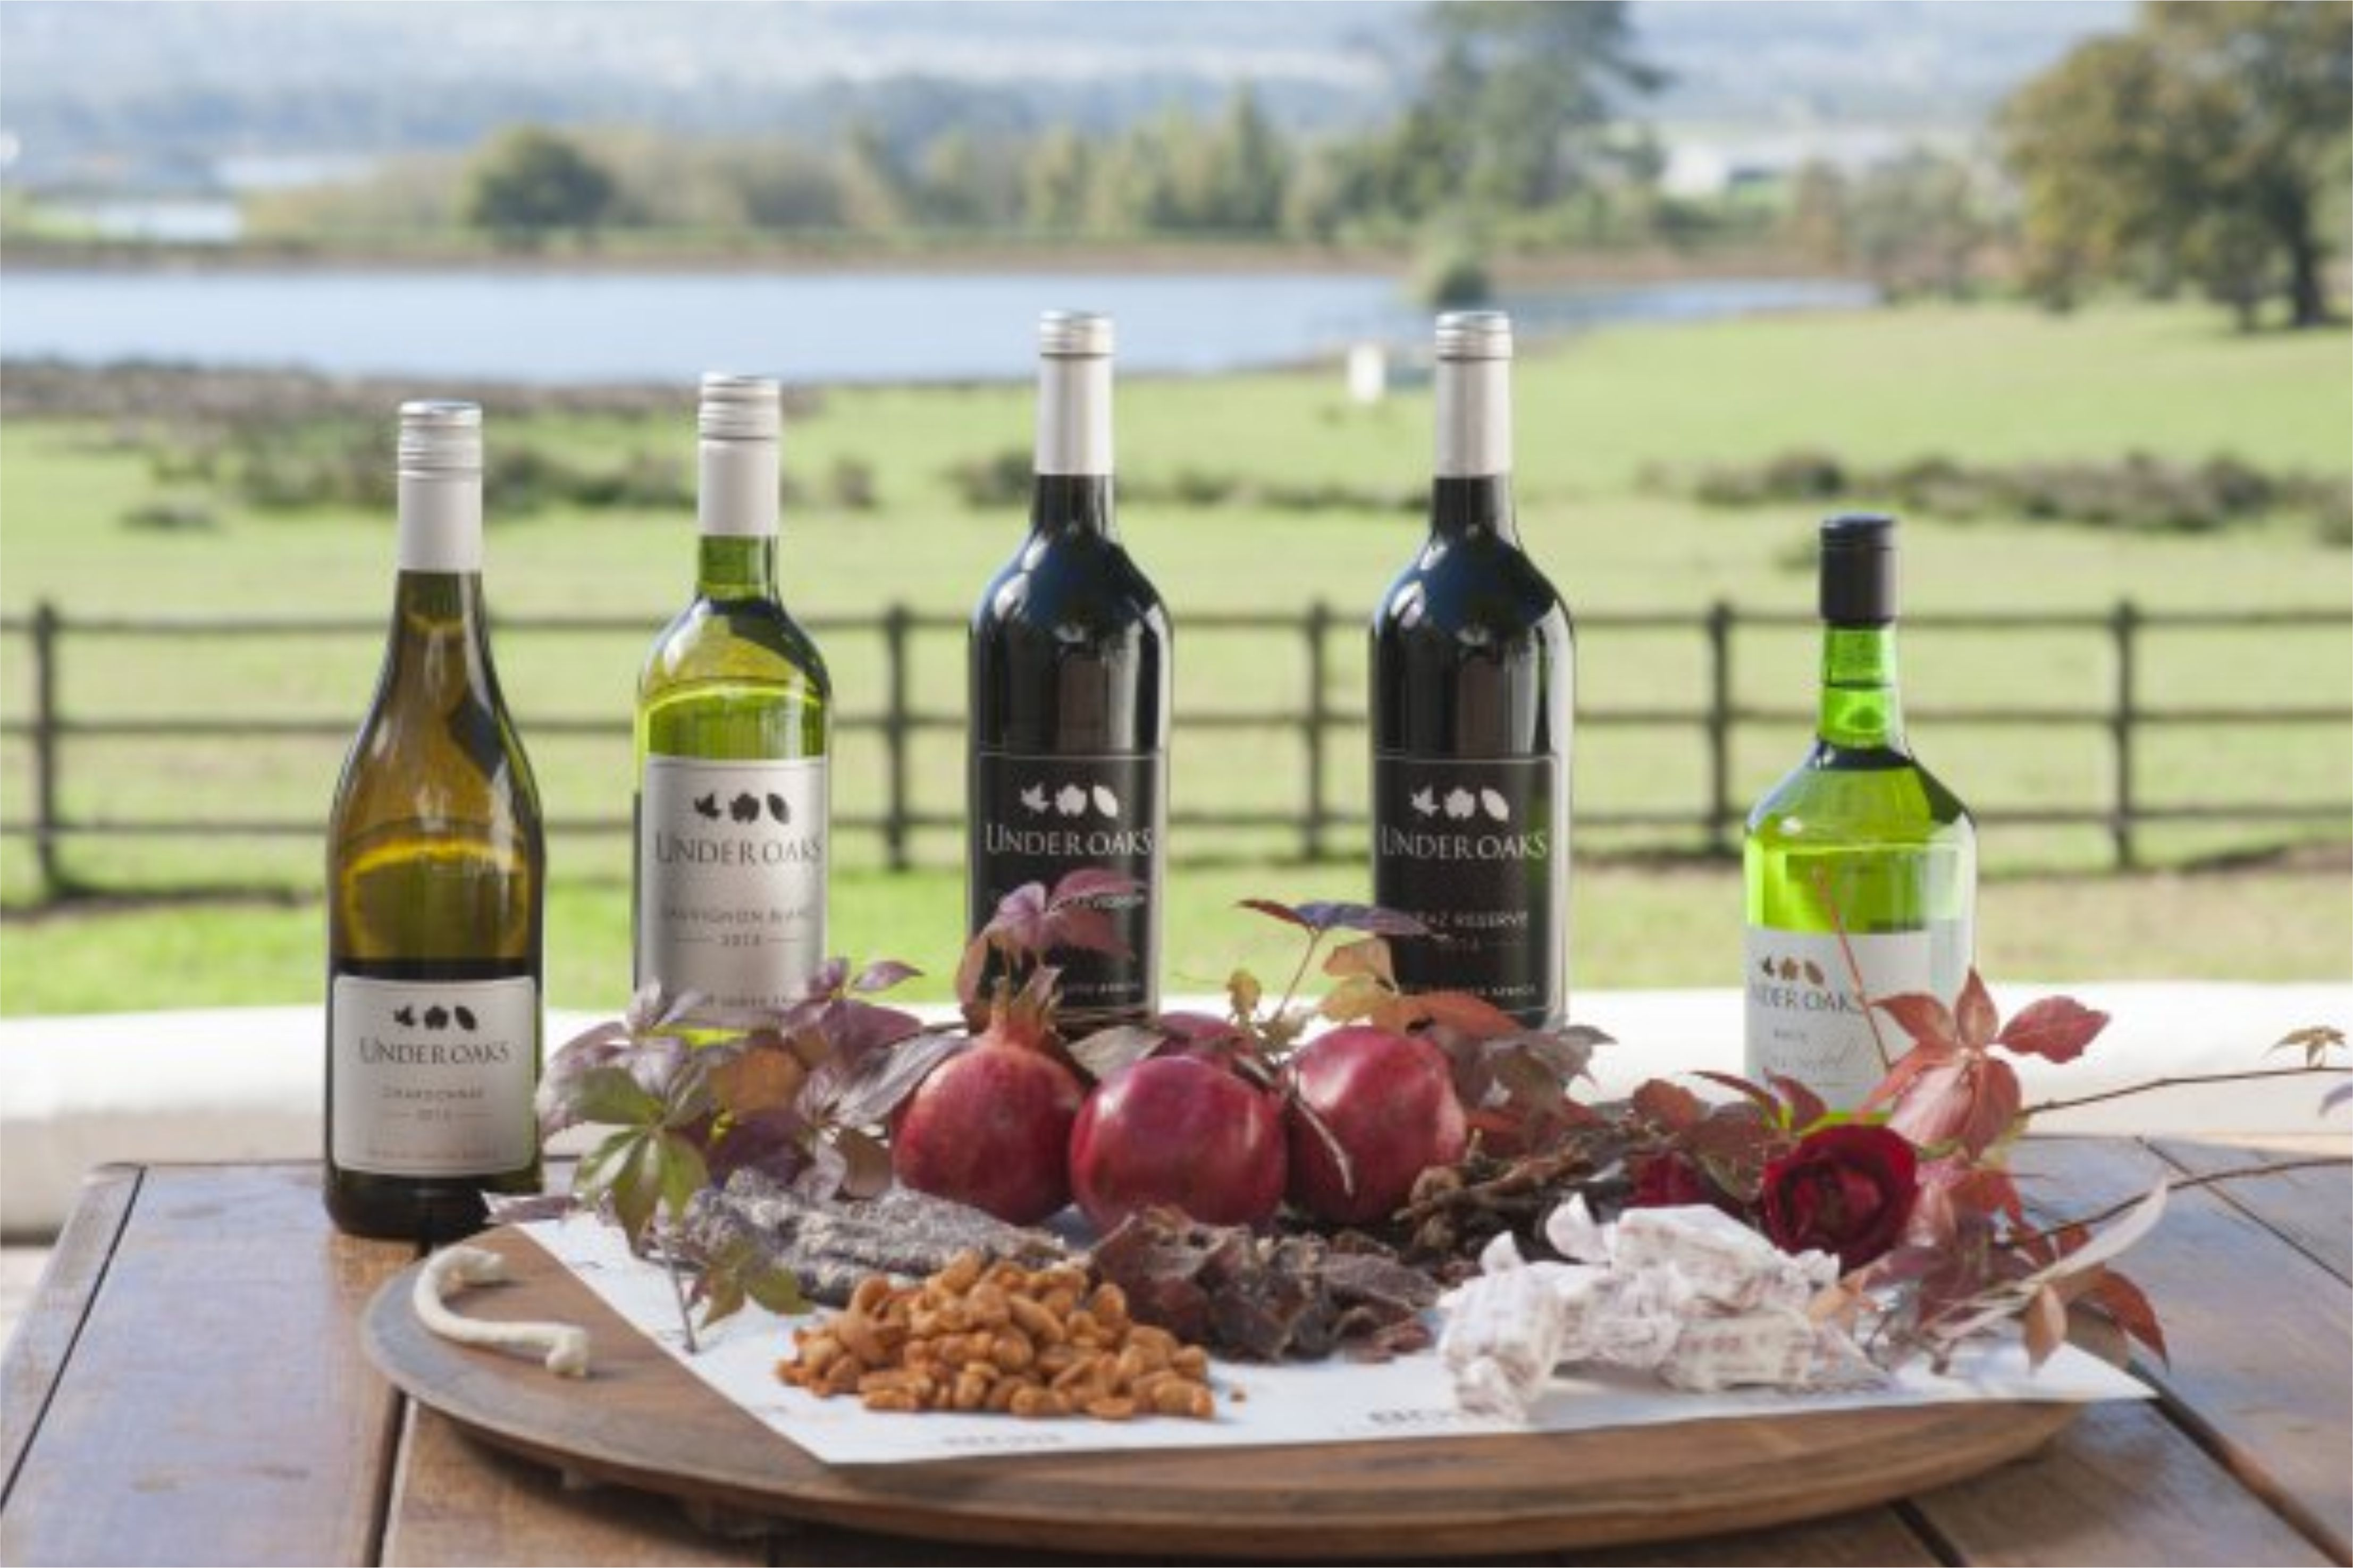 A selection of white and red wines from Under Oaks, with pomegranate fruit, biltong, boerewors, nougat and nut platter.